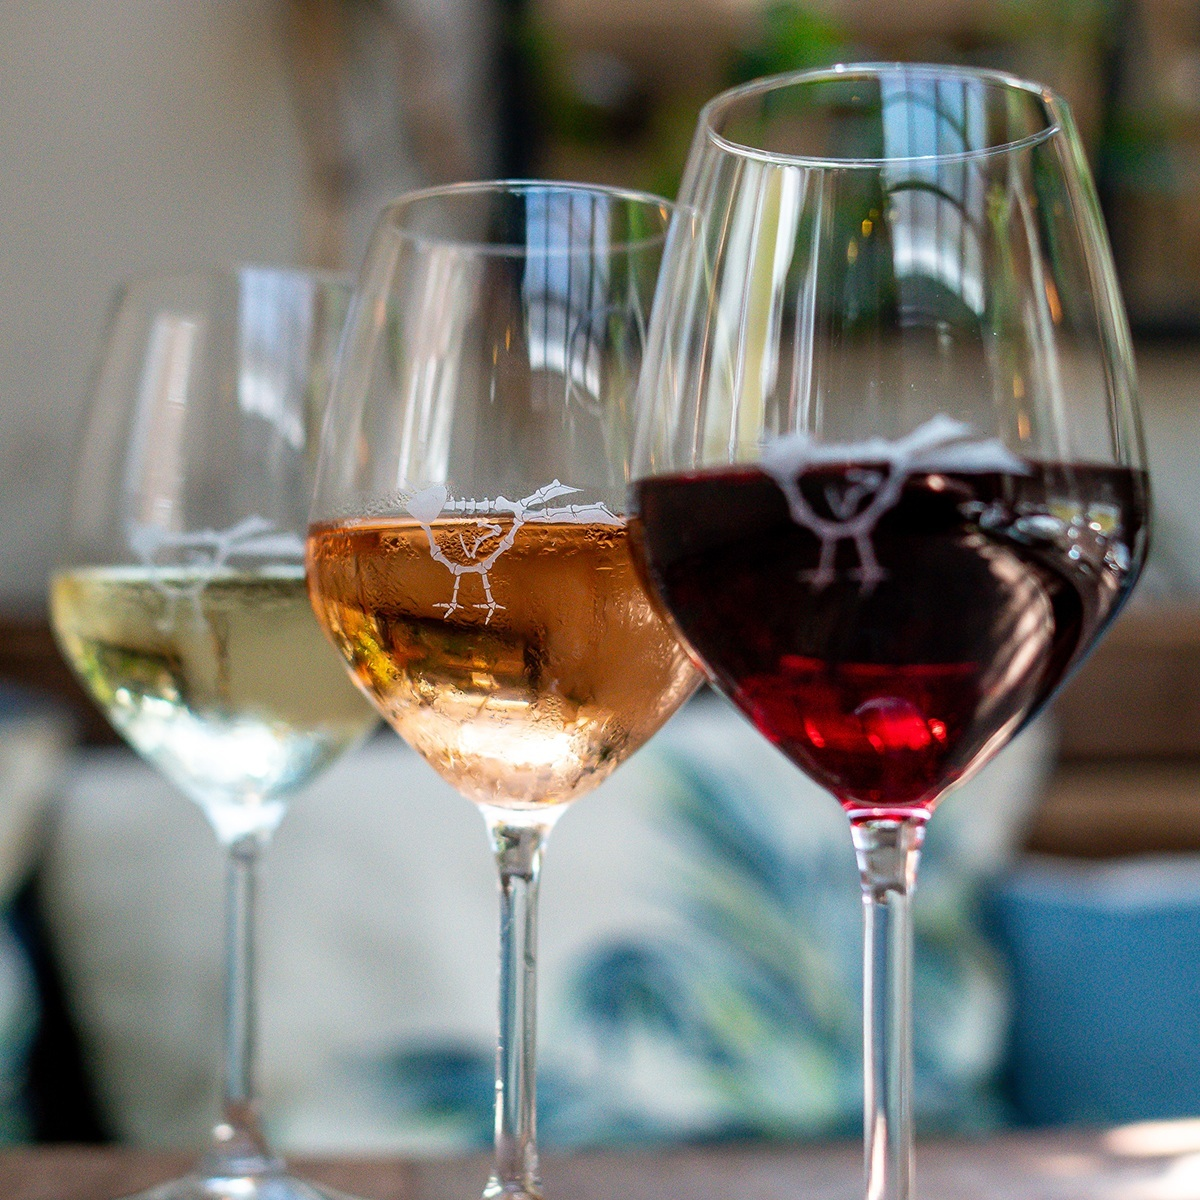 $60PP BASIC WINE PACKAGE - 2HR BOTTOMLESS SELECTED WINESparkling | NV Valdo Prosecco Veneto ItalyWhite | 2018 Cake Wines Pinot Gris Adelaide Hills AustraliaRose | 2017 Le Saint Andre Rosé Provence FranceRed | 2017 Padrillos Malbec Mendoza Argentina2017 Zorzal Pinot Noir Mendoza ArgentinaBeer | Pacifico Lager Mazatlan Mexico2HRS $60PP | 3HRS $90PP | 4HRS $120PP*Wine and spirit selections are subject to availability and change frequently. Beverage packages are available for whole parties only.